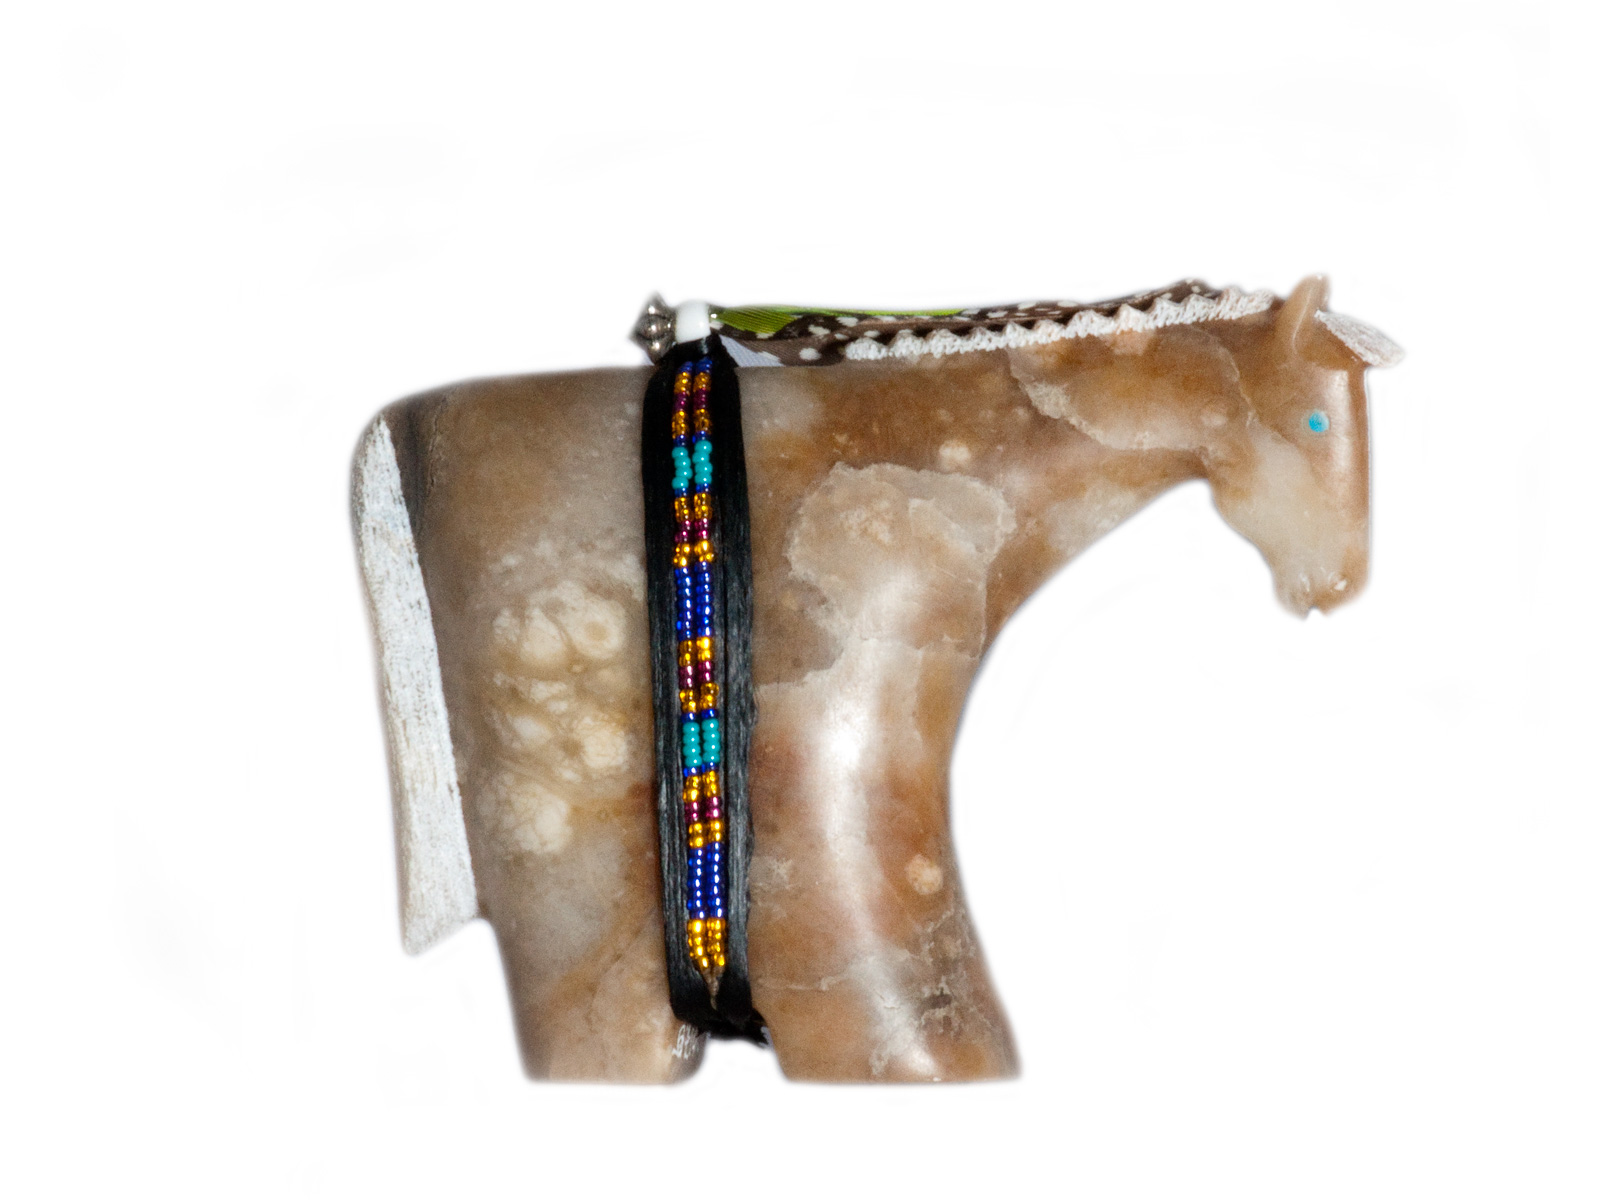 Navajo buffalo bison flat palm fetish and similar items